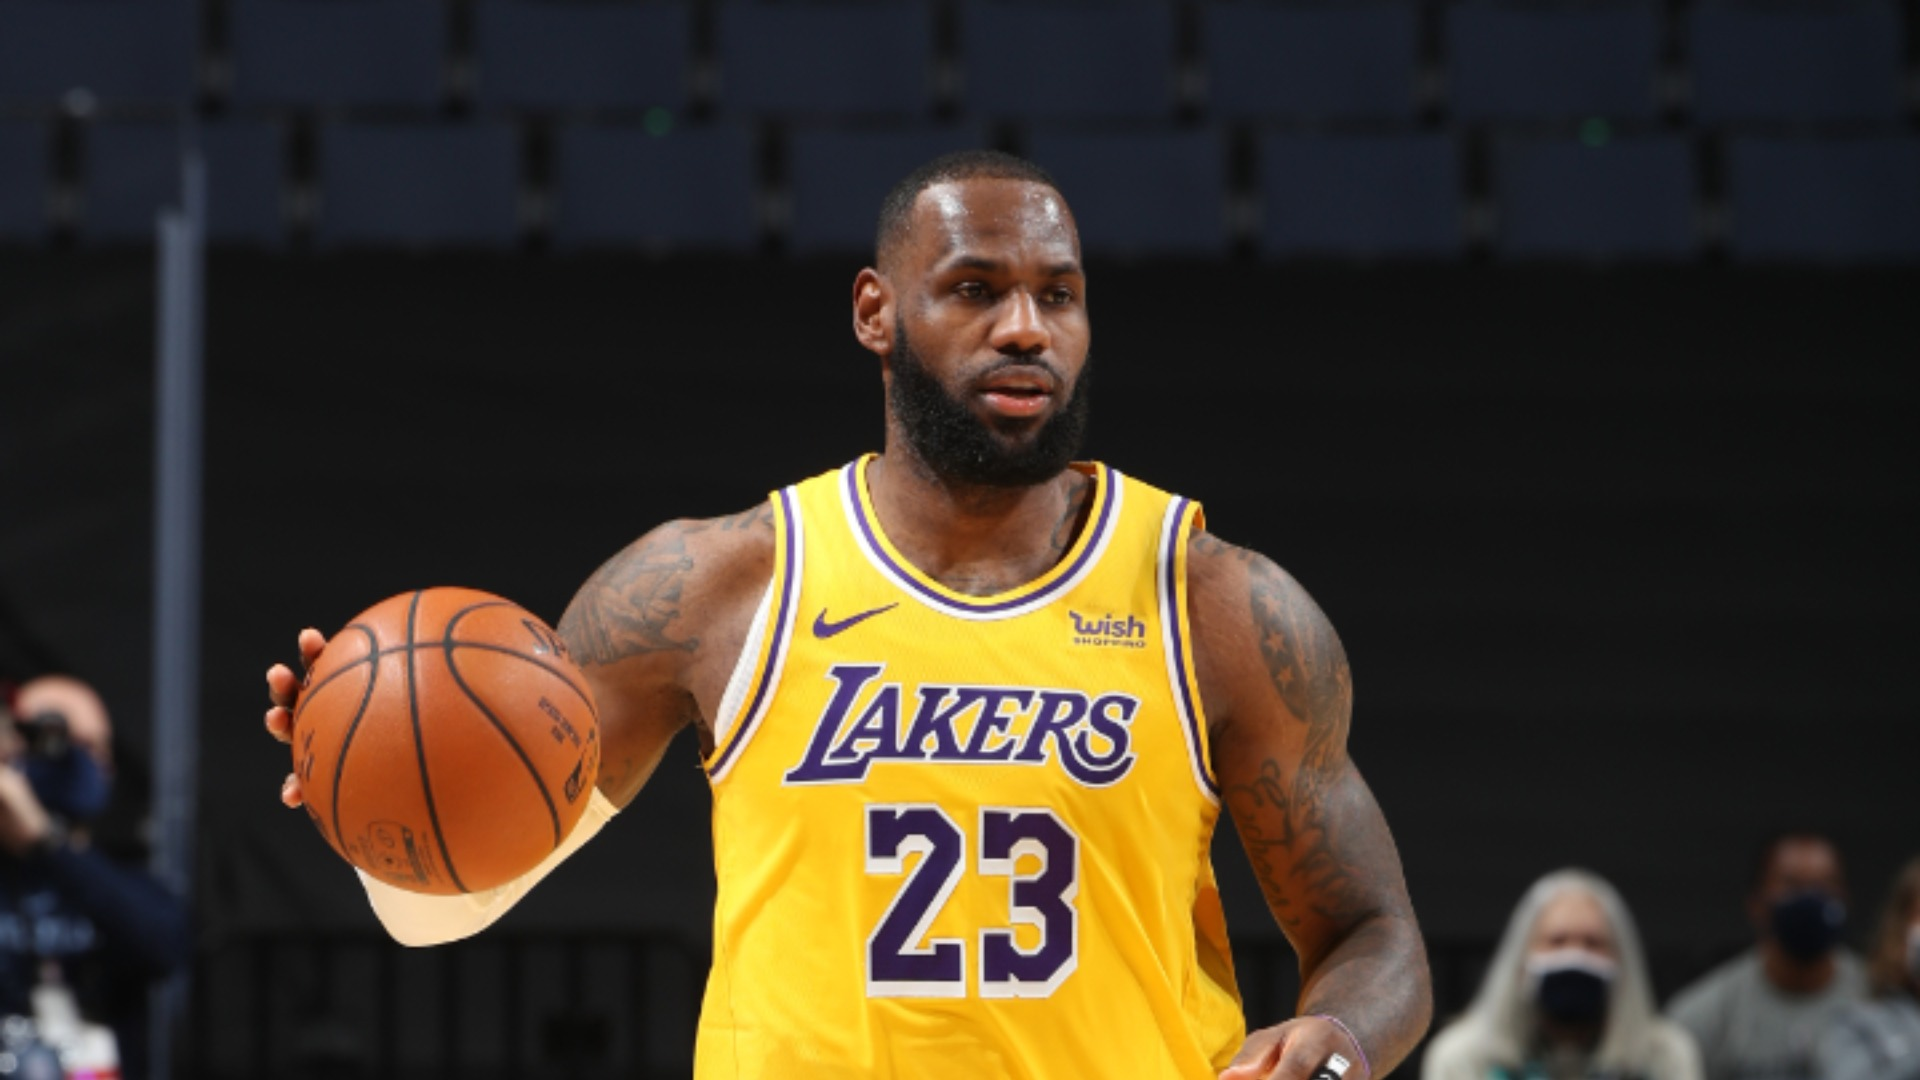 A blow to the heart and the gut: LeBron James and fellow Lakers stars speak out after Jacob Blake ruling